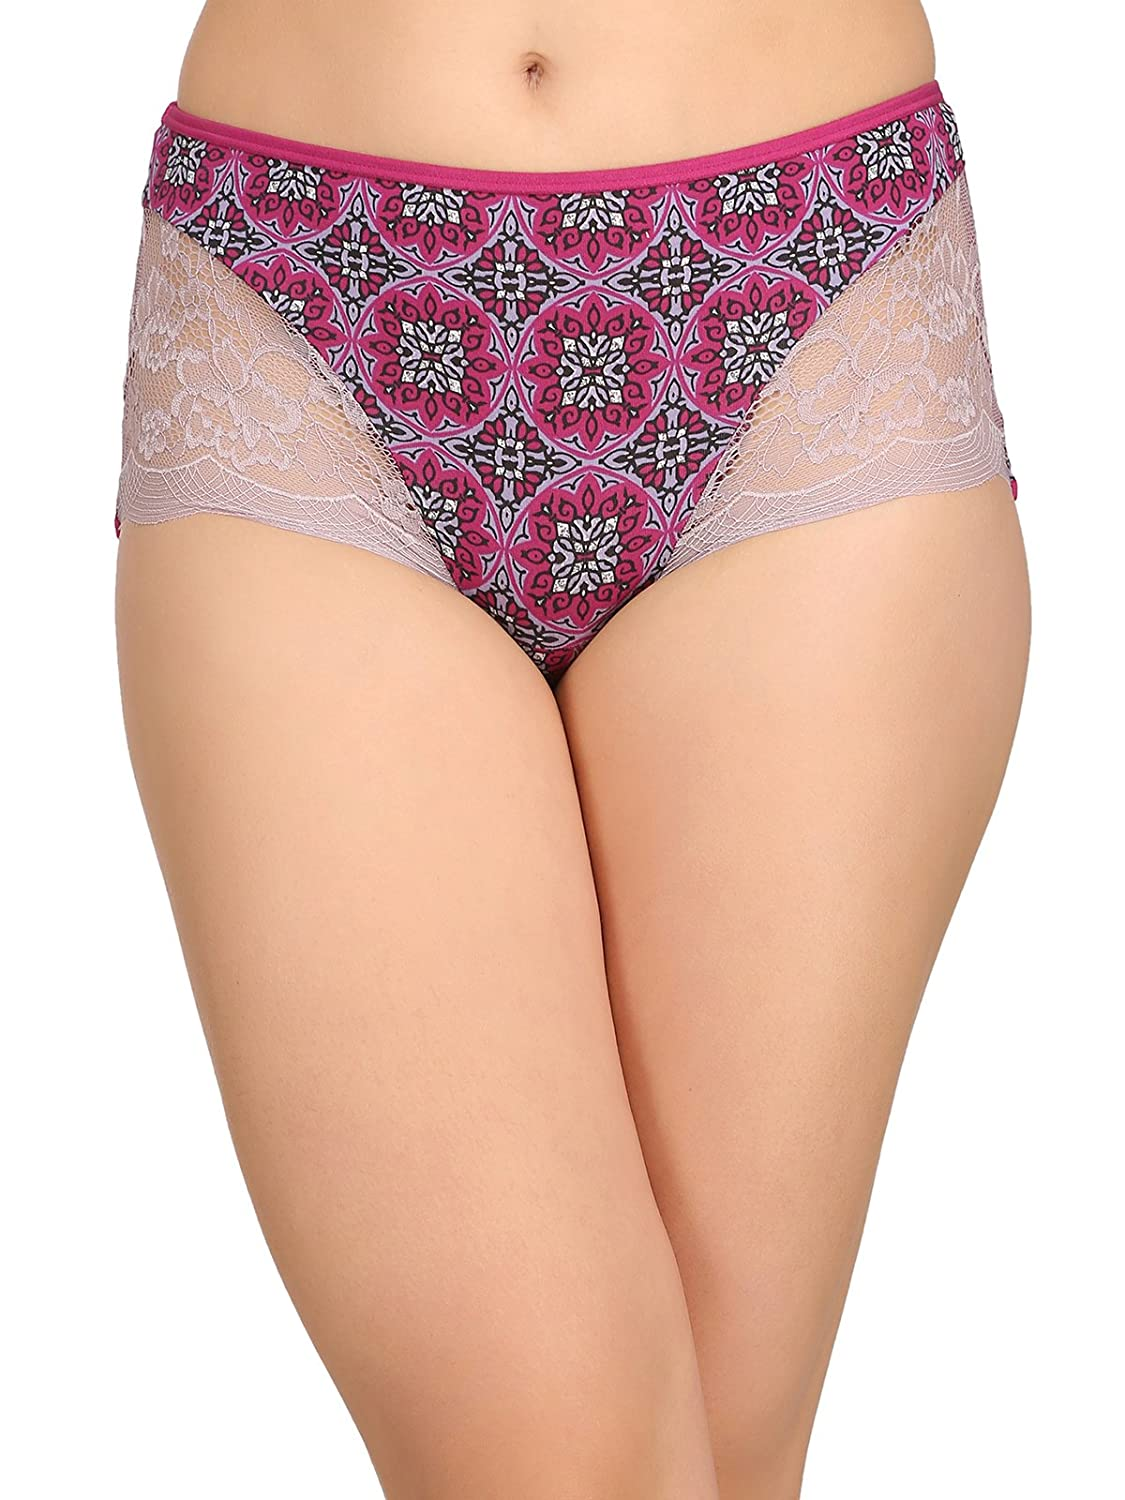 743b7d08c5ba Clovia Women's Cotton High Waist Printed Hipster Panty with Lace Wings:  Amazon.in: Clothing & Accessories